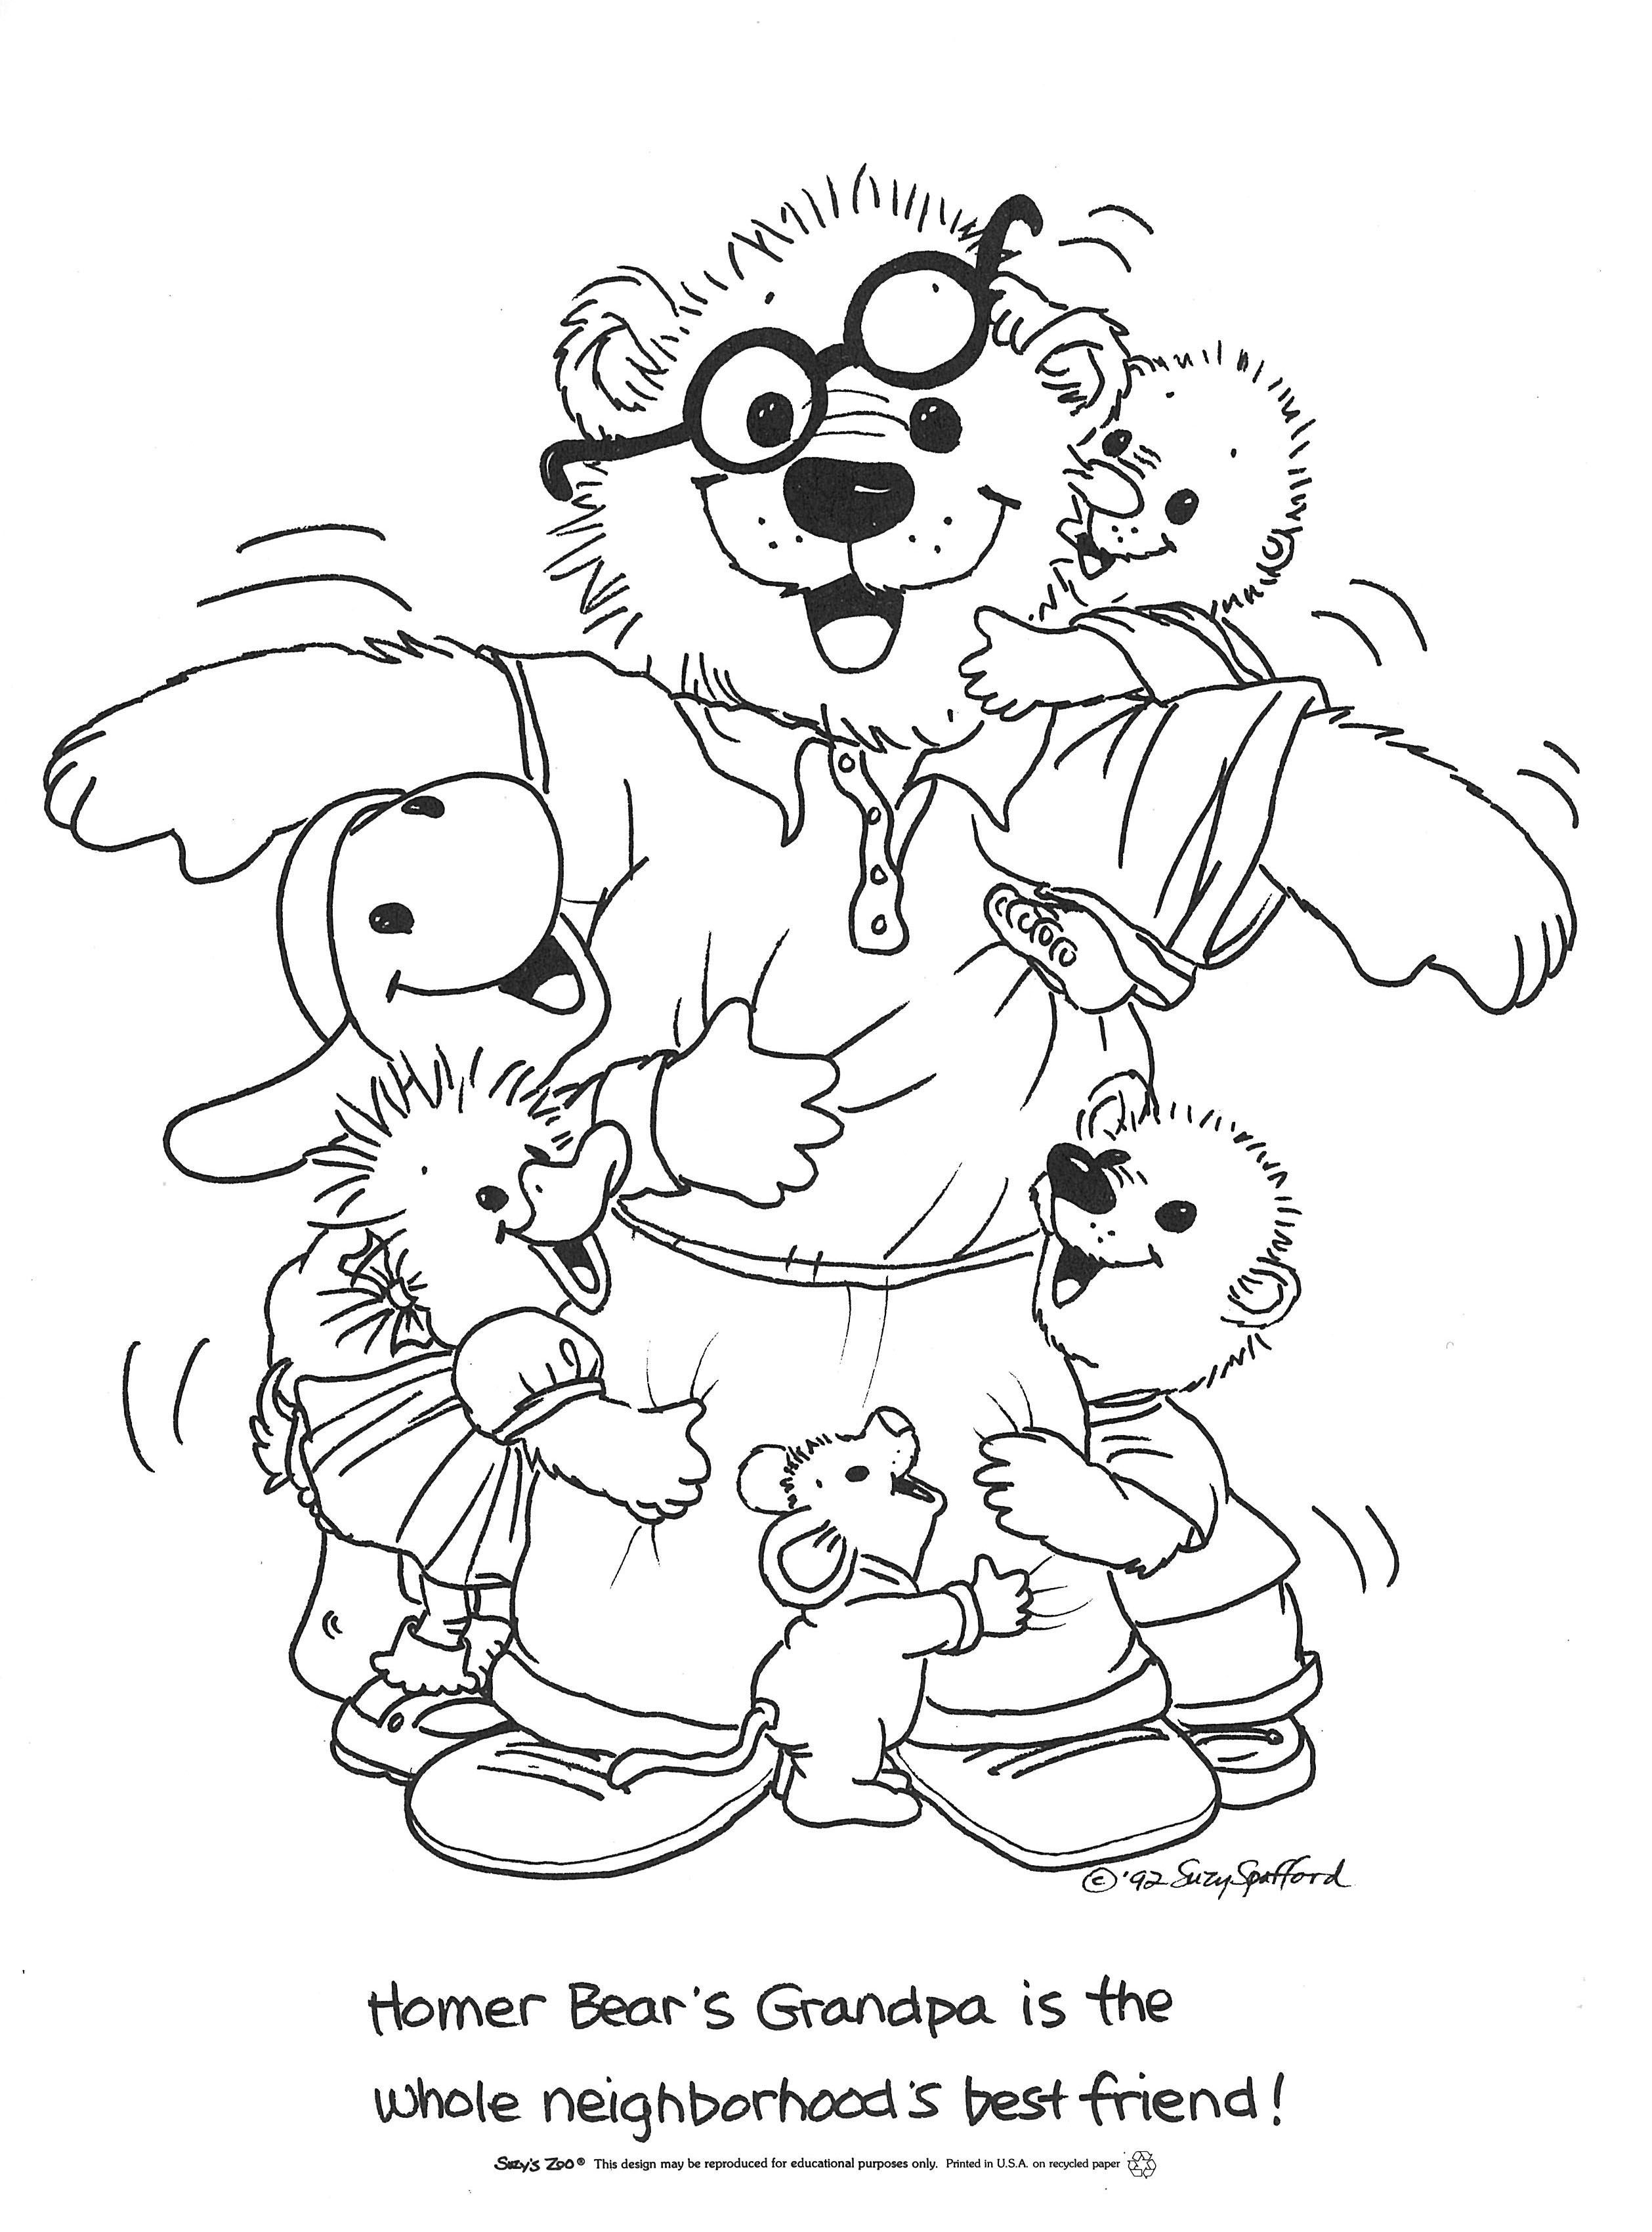 Coloring Pages Suzy Zoo Coloring Pages 1000 images about suzy zoo coloring pages on pinterest kitty cats and cute kitty